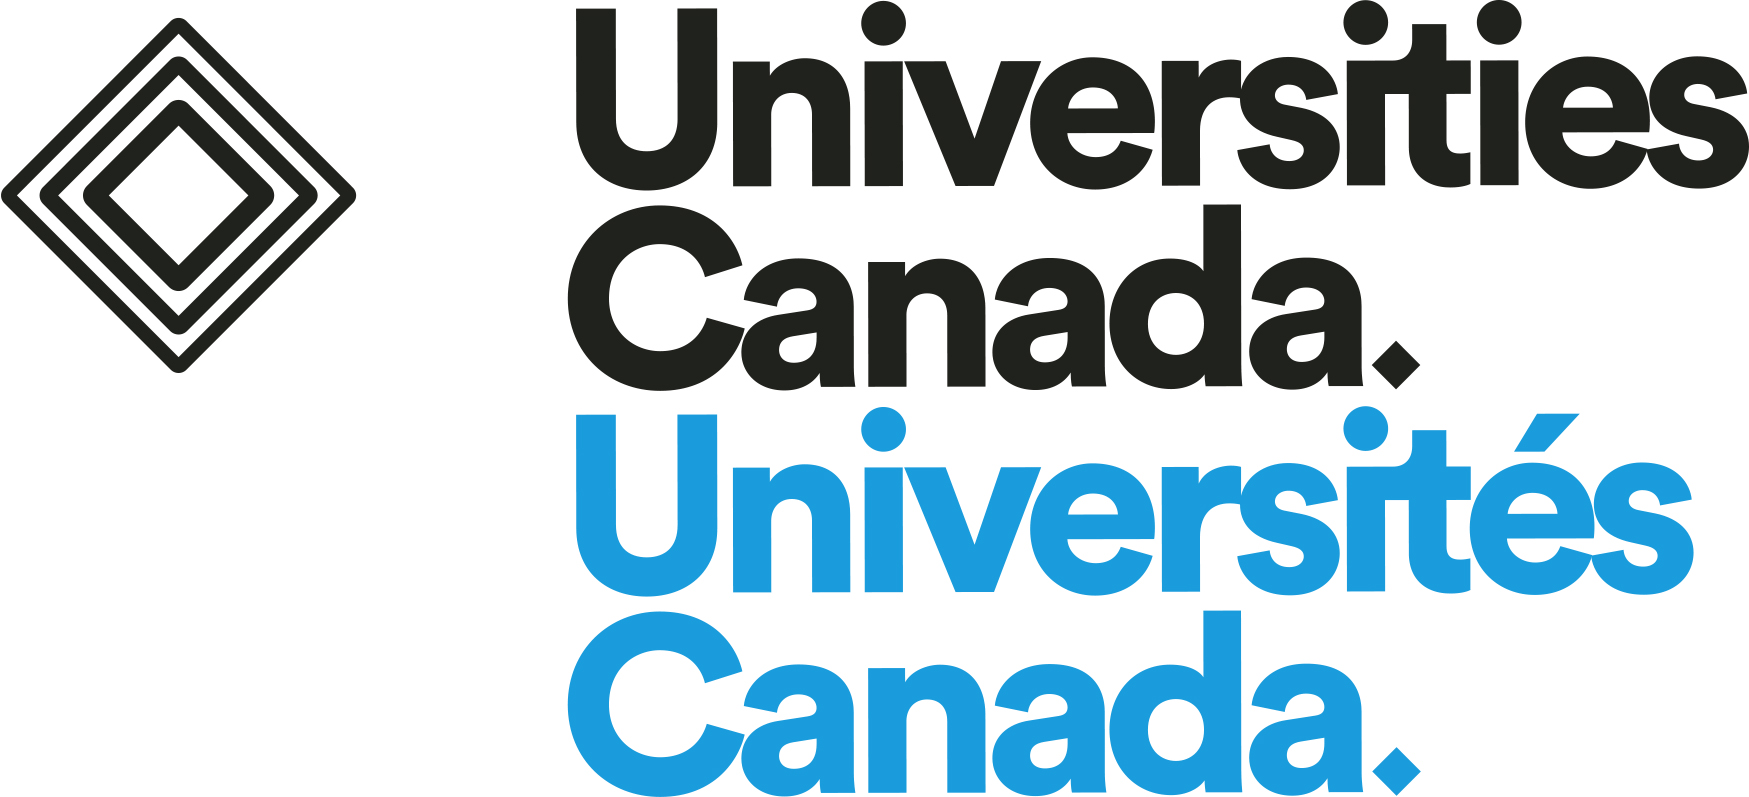 UniversitiesCanada_Logo_Bilingual_Stacked_Black_Blue_large (1).jpg